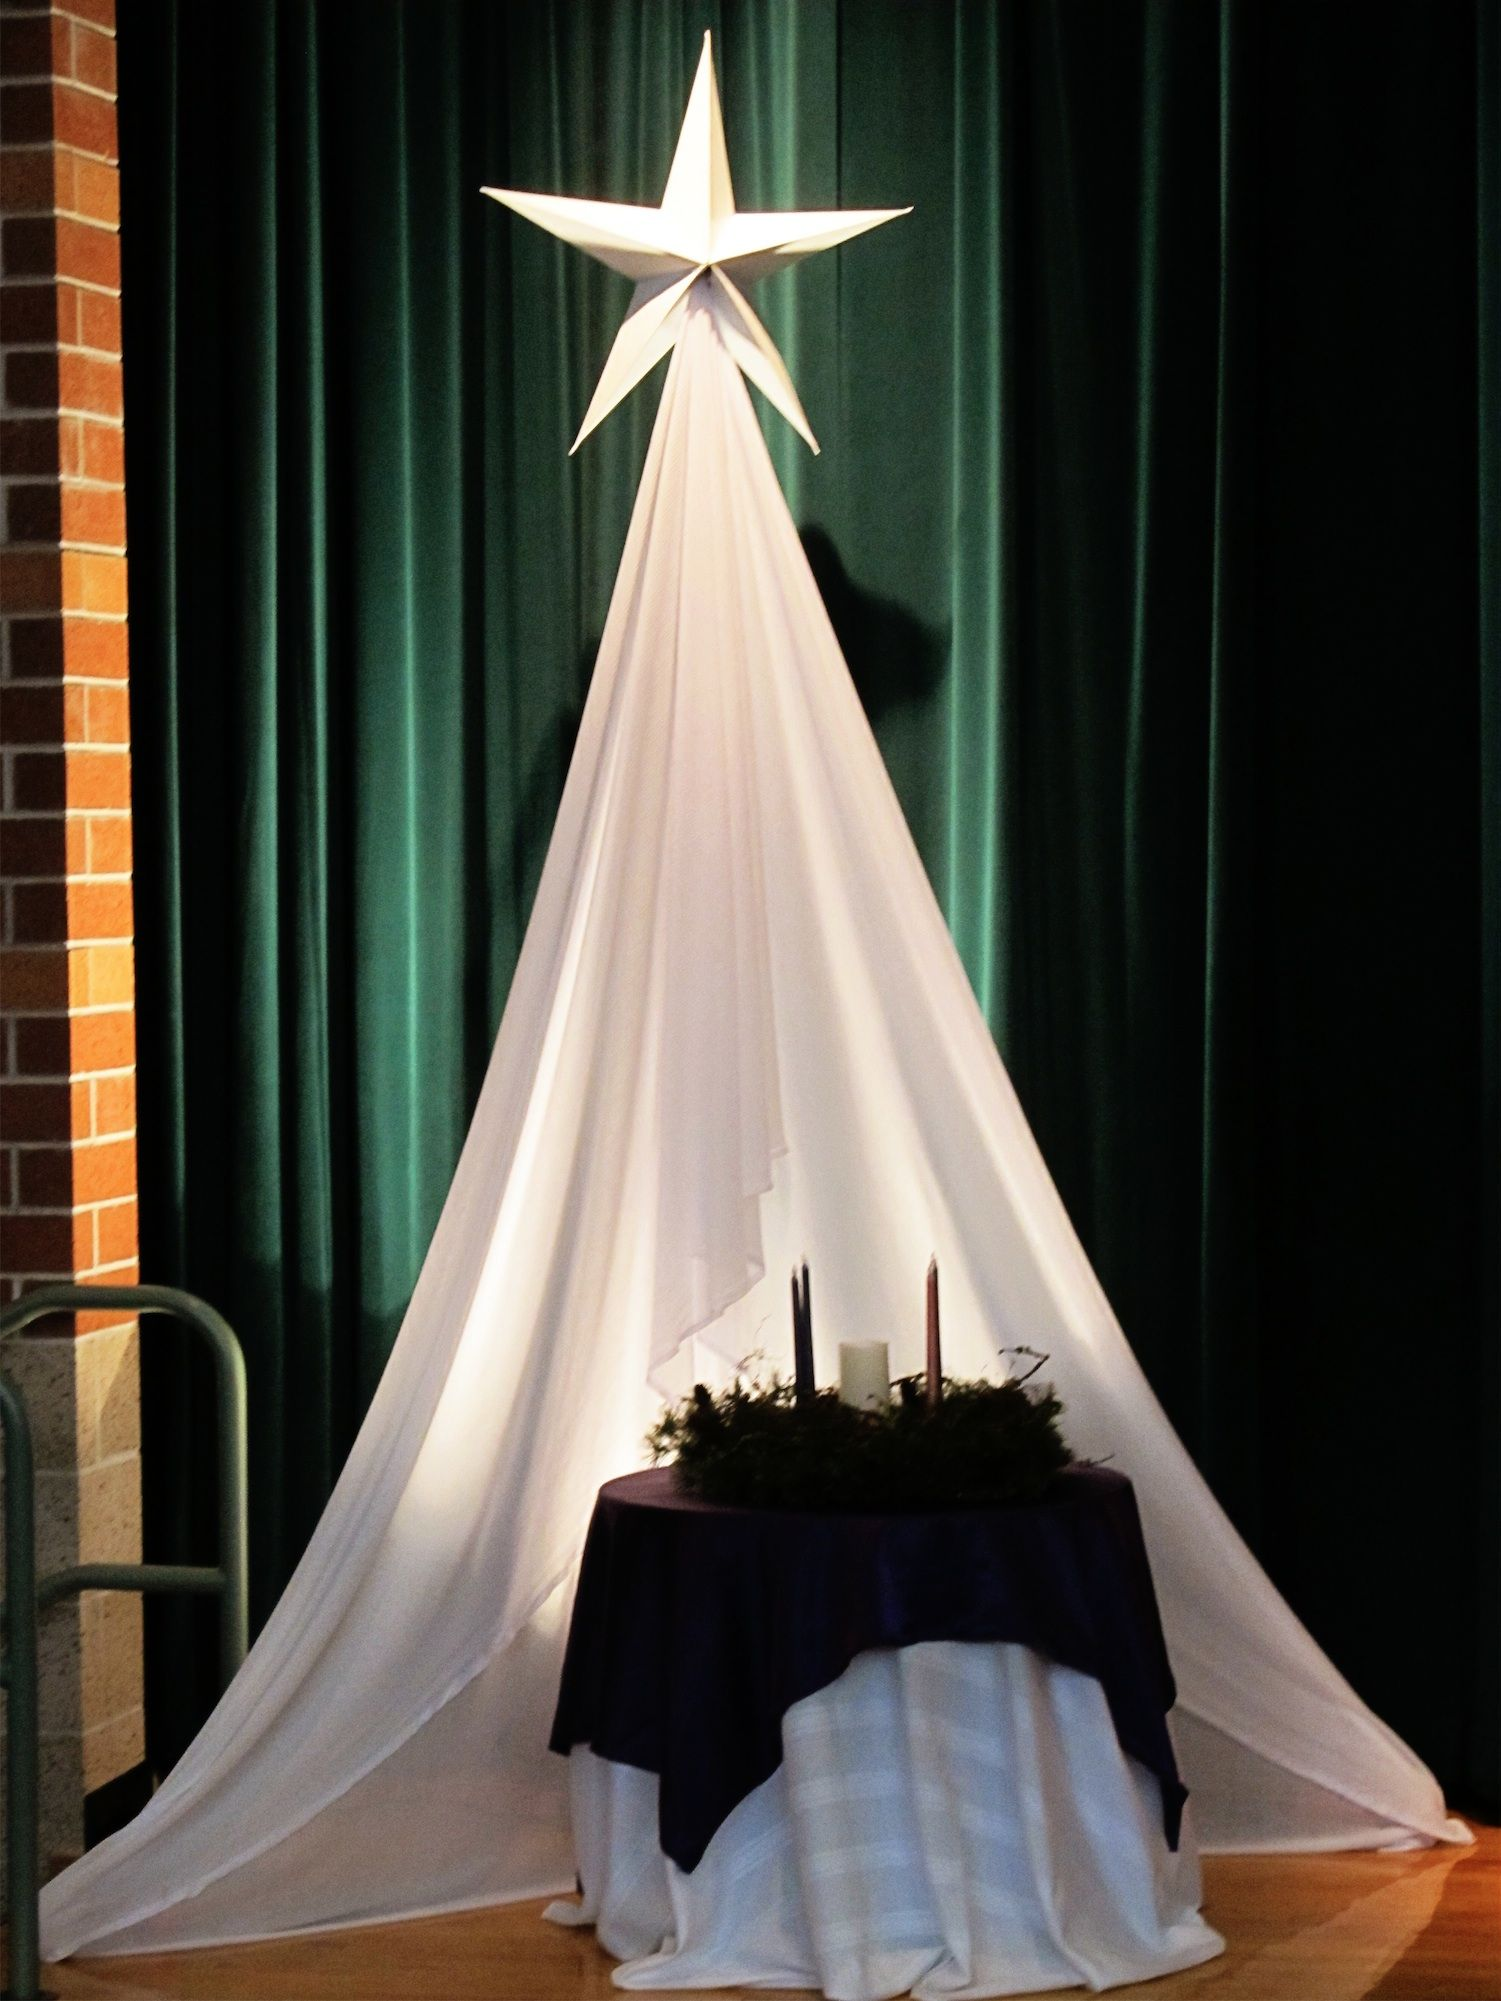 Wedding decorations inside church  Best idea PVC pipe on music stand base  displays for church in